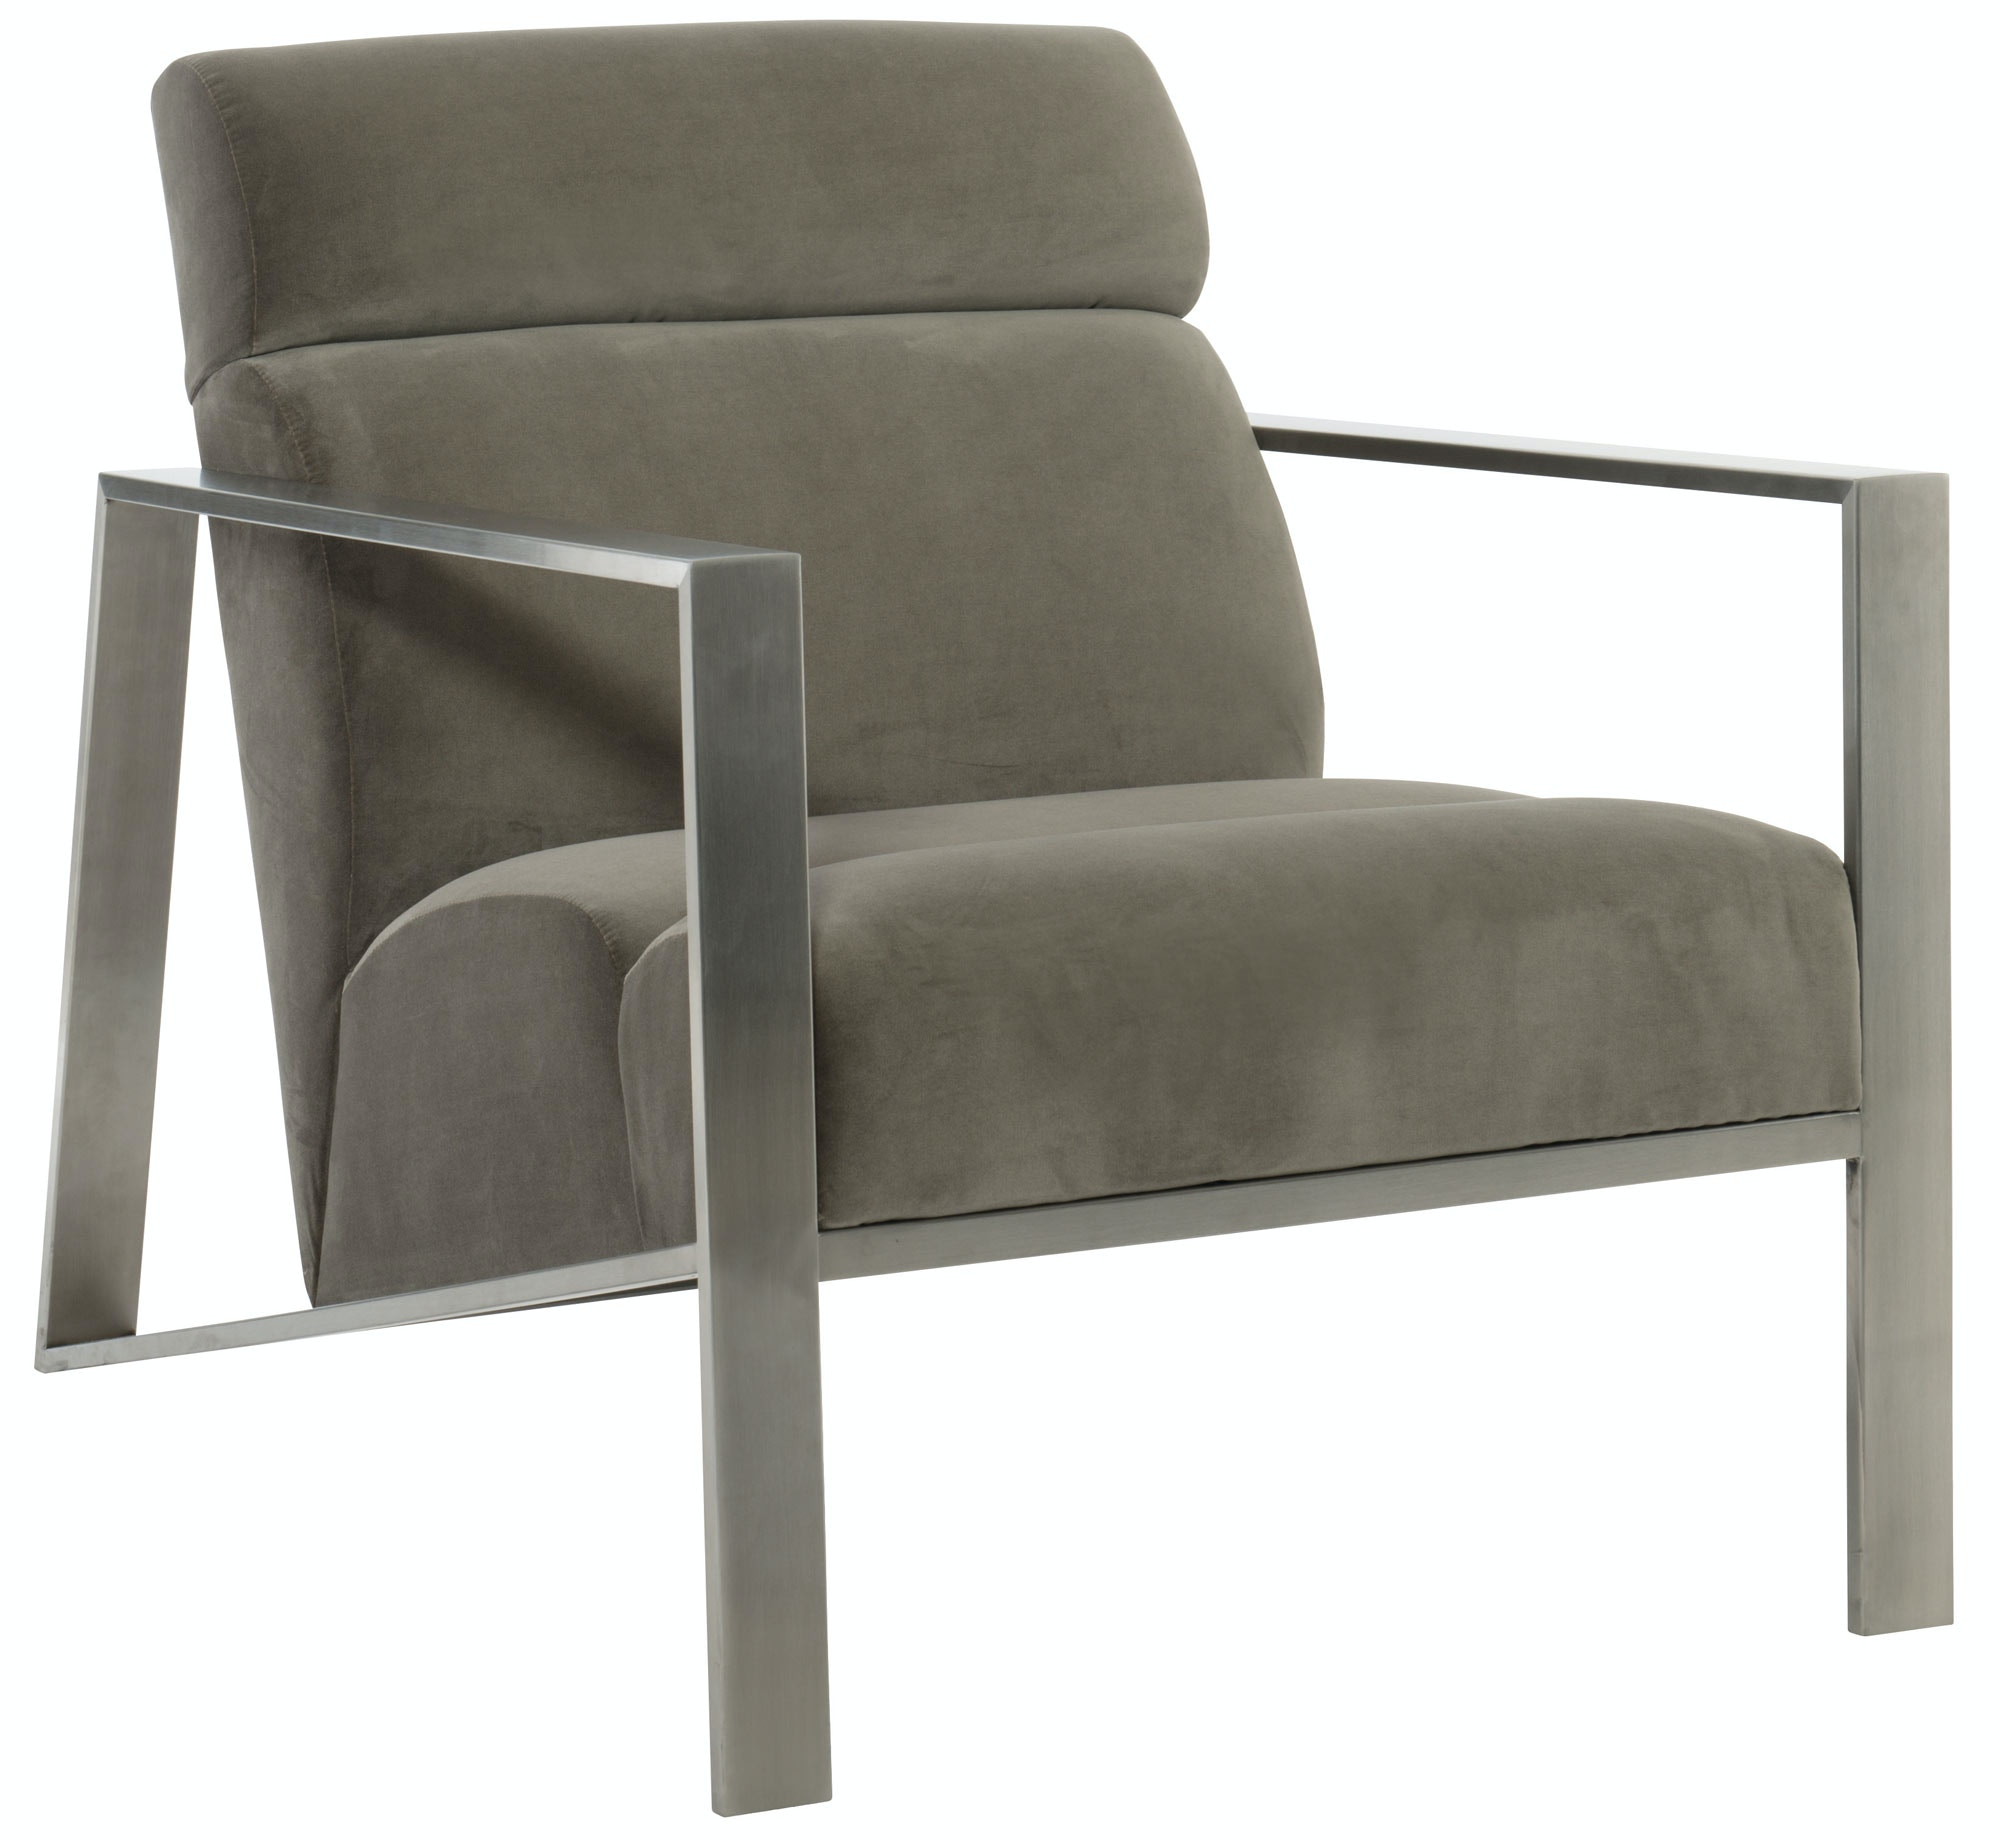 Bernhardt Chair B4022